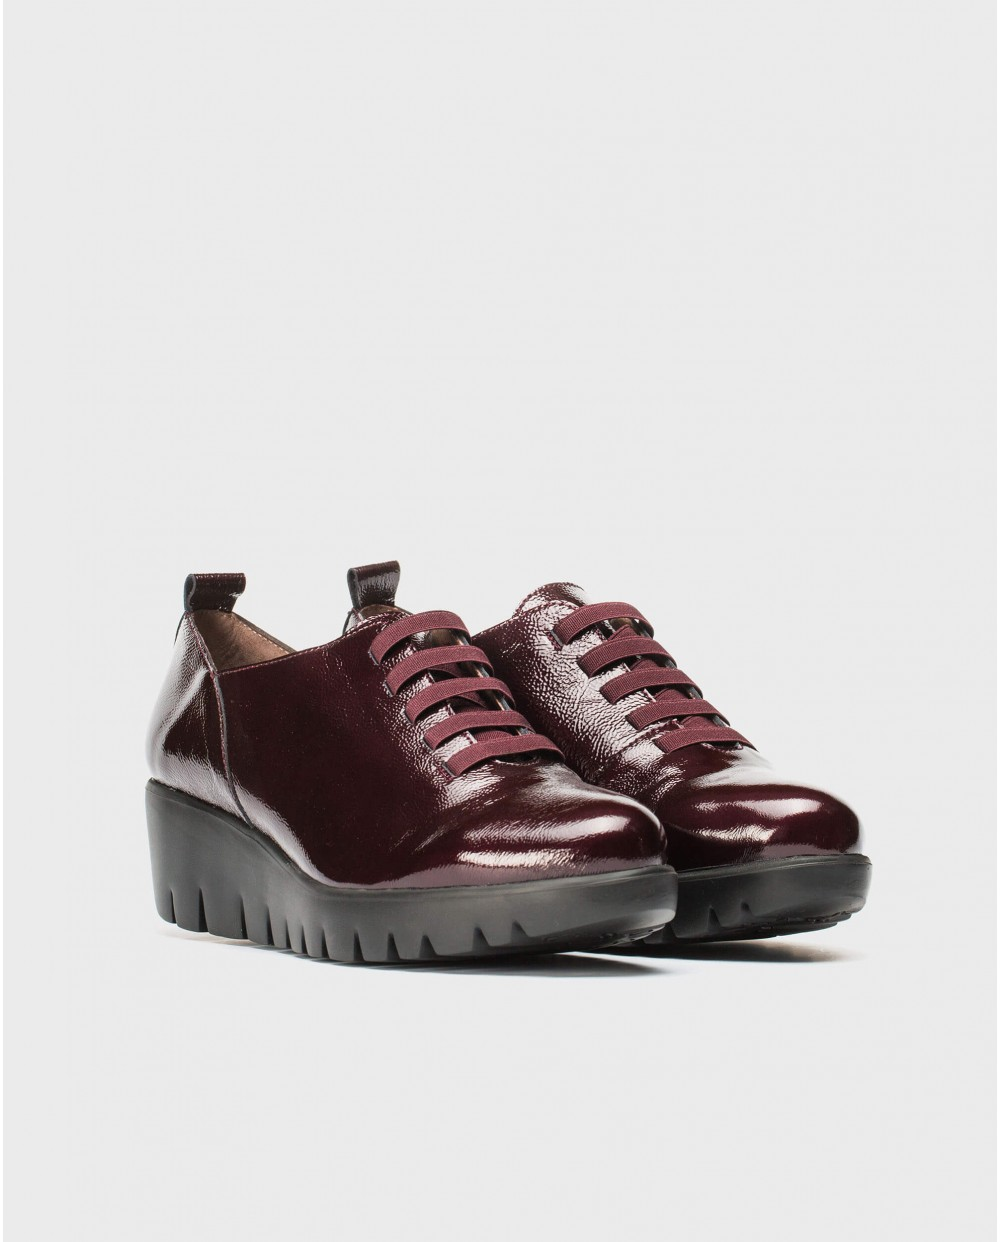 Wonders-Wedges-Patent leather moaccasin elastic